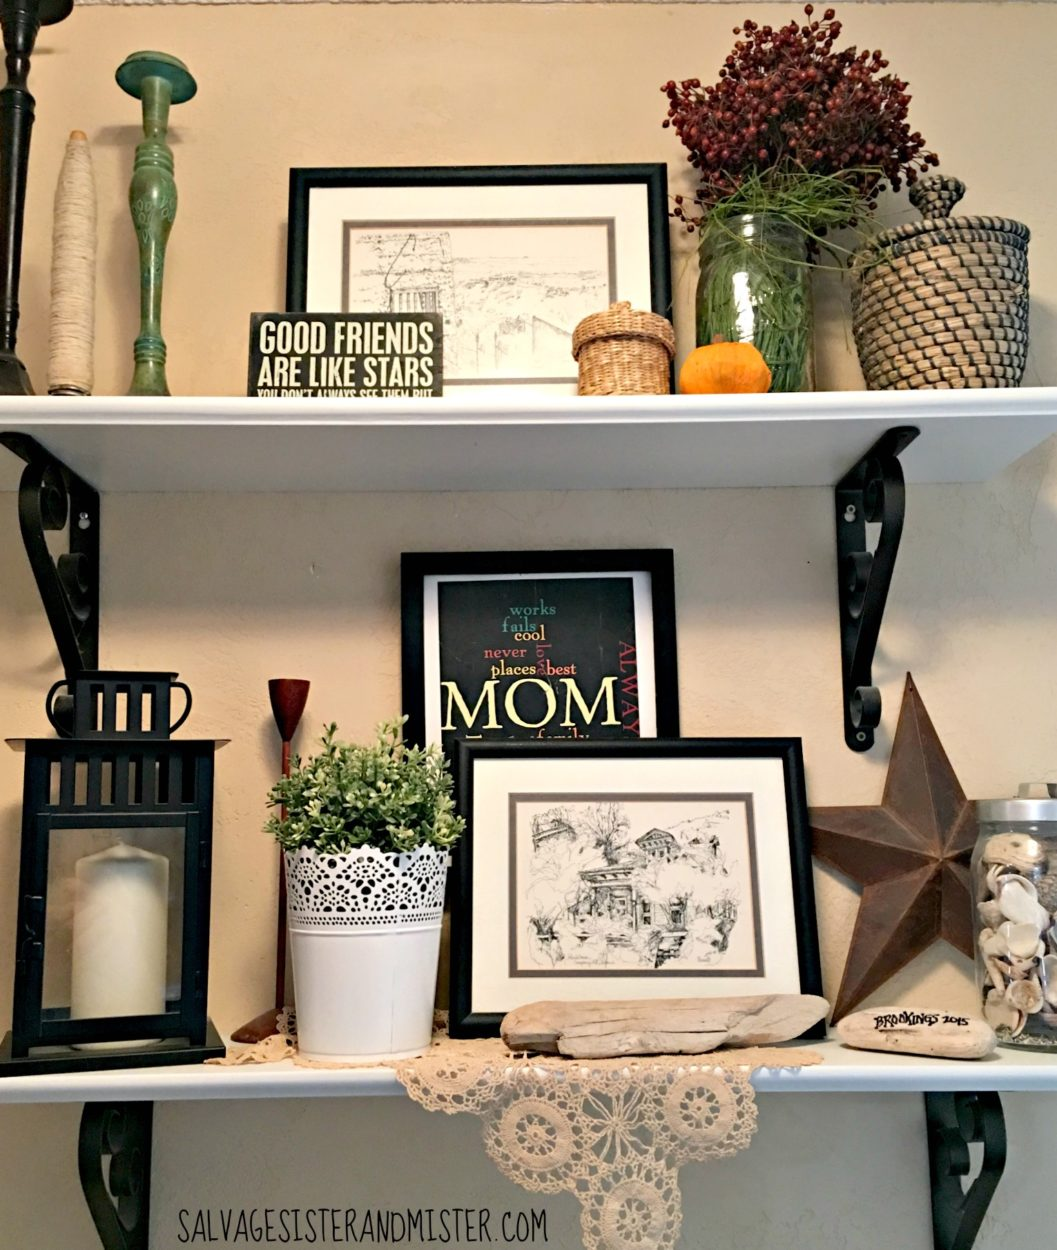 by adding just a few pumpkins around the home, you can add a simple fall touch without a lot of money or tons of items to store. Simple fall home decor tips and tricks.